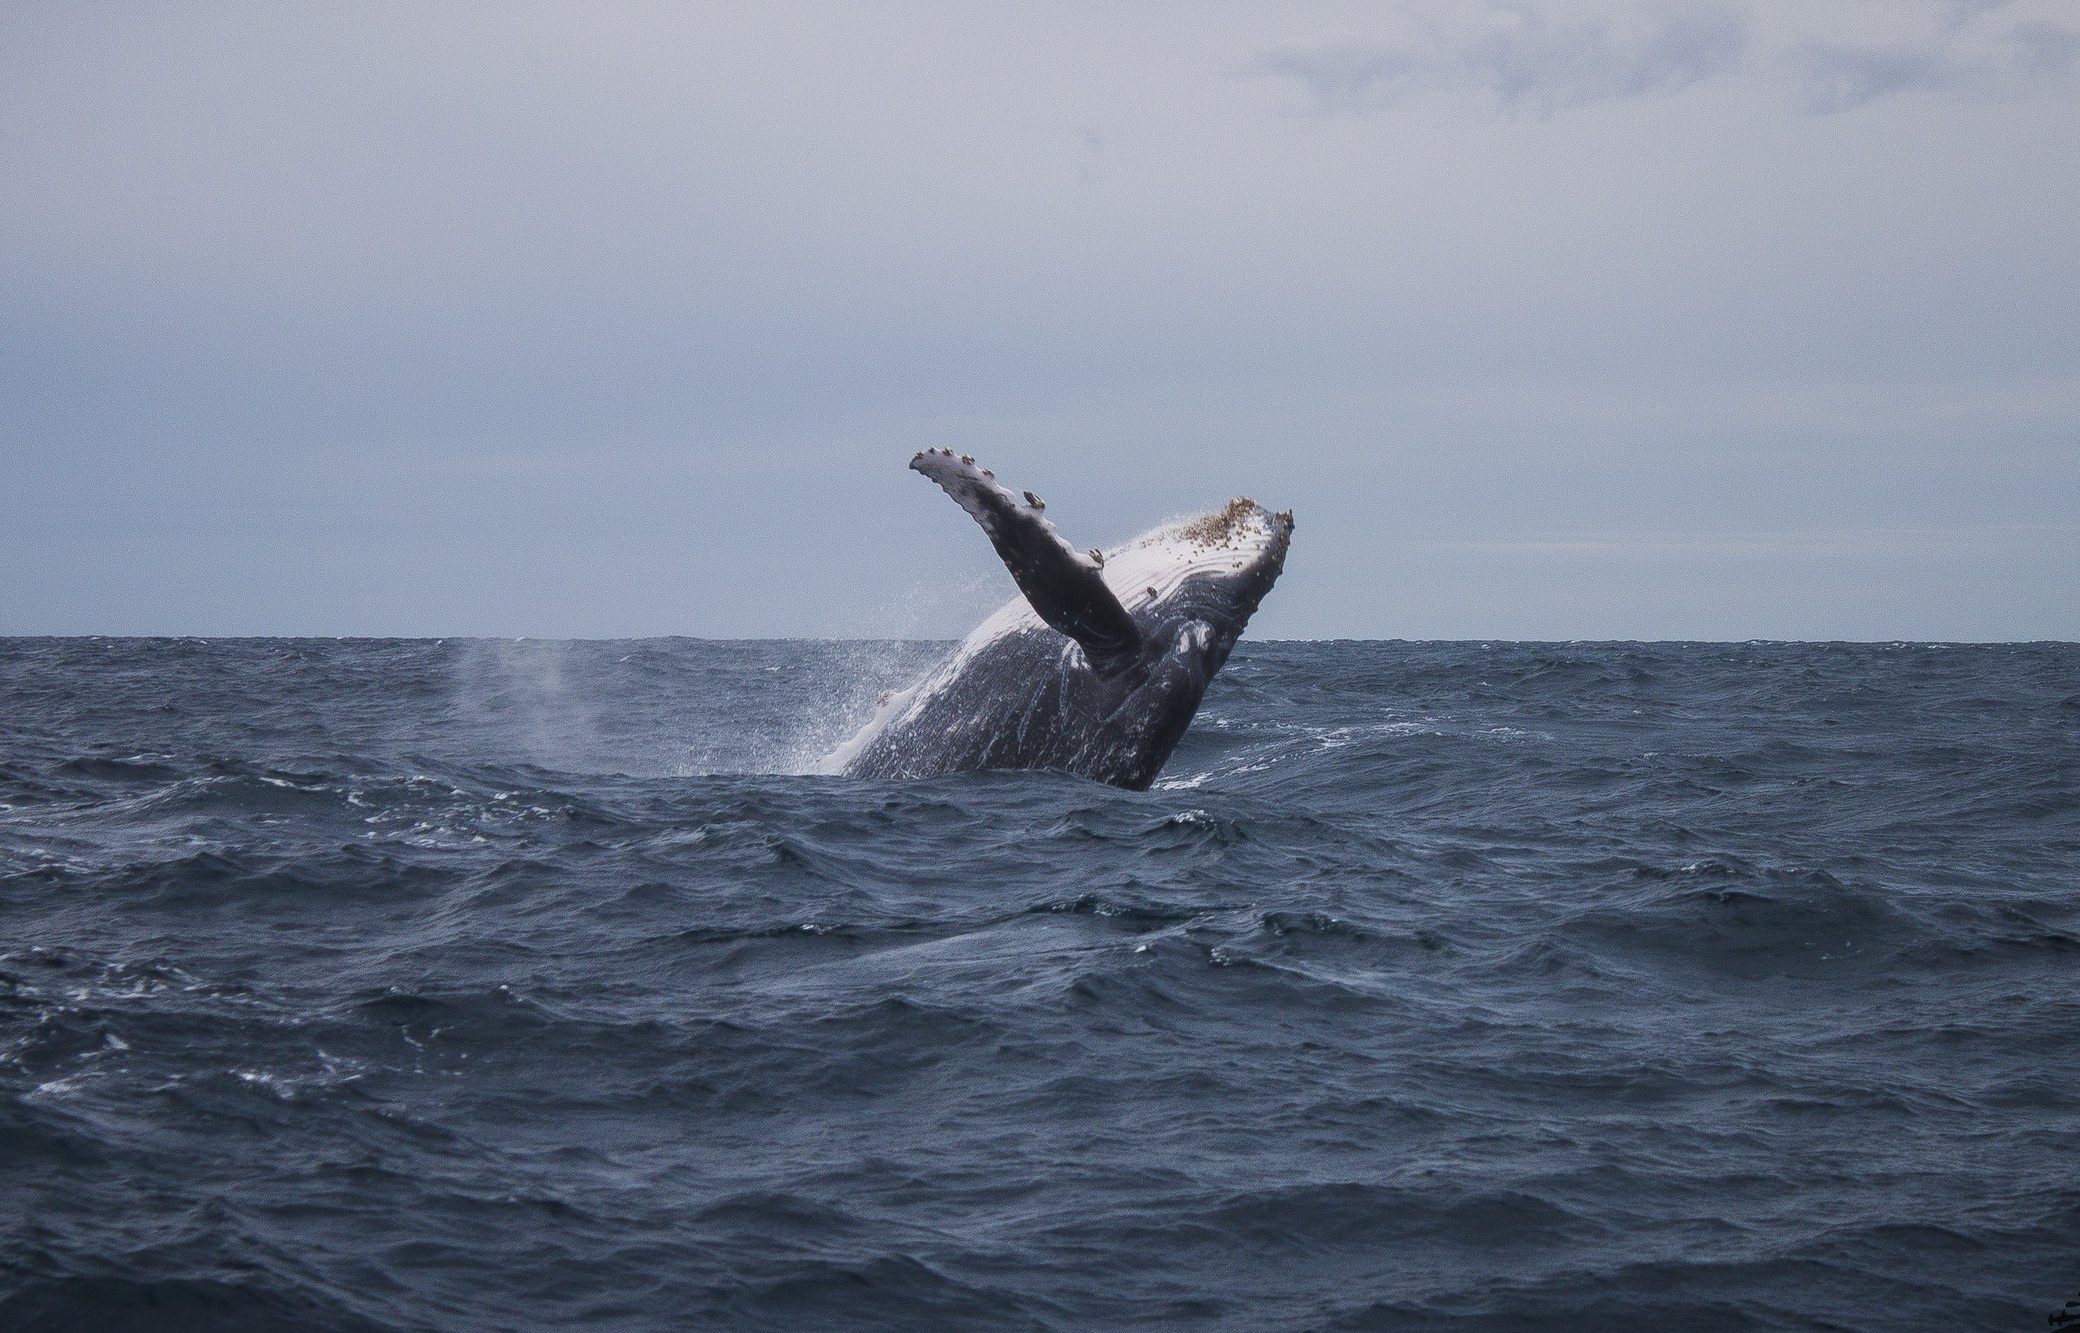 A Humpback Whale ( Megaptera novaeangliae ) breaches off the coast of Exmouth, Western Australia.